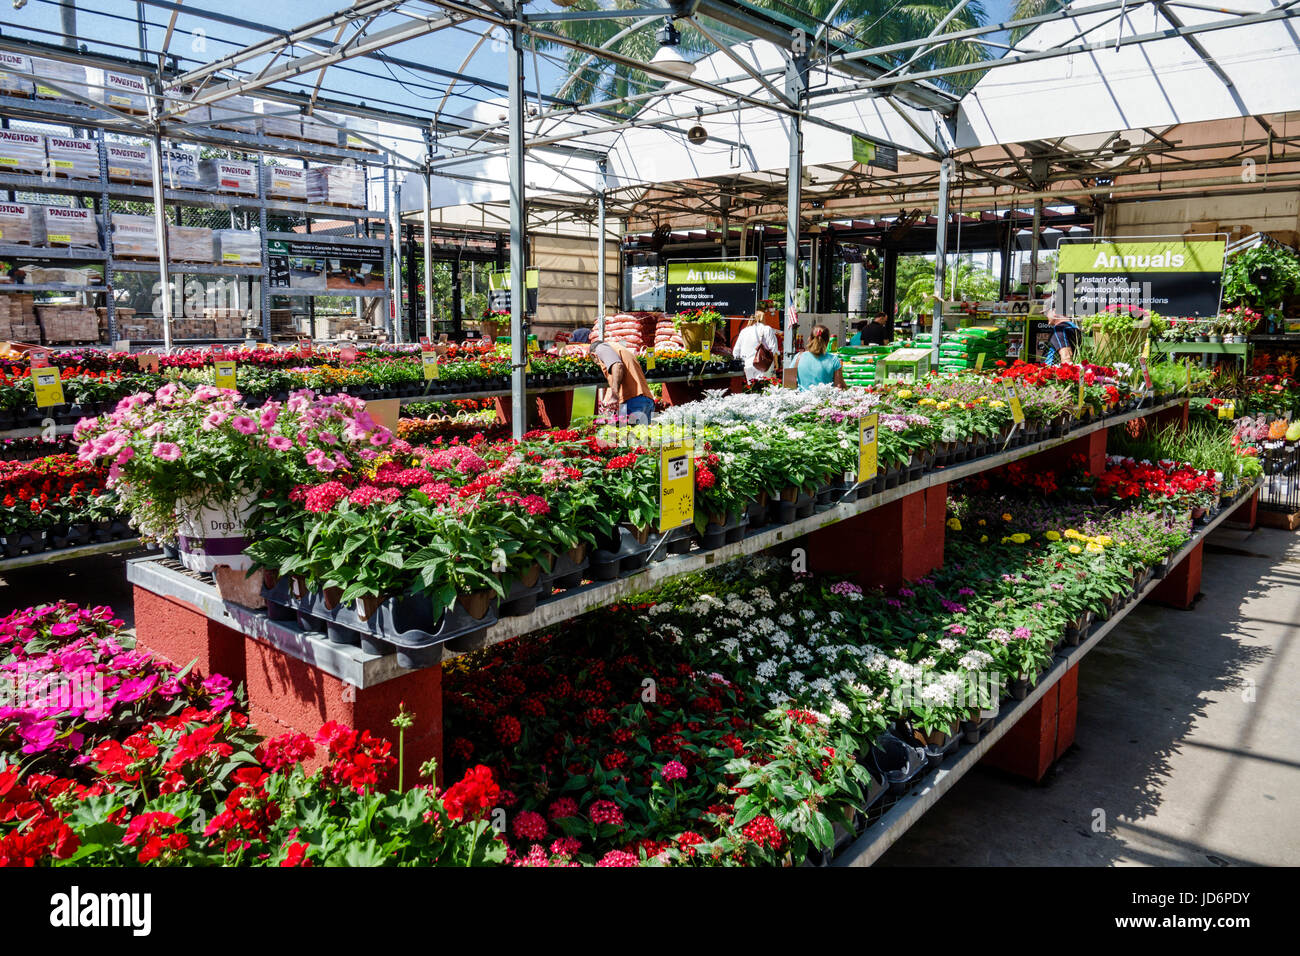 Florida Fl South Miami Little Havana Home Depot Home Stock Photo Alamy